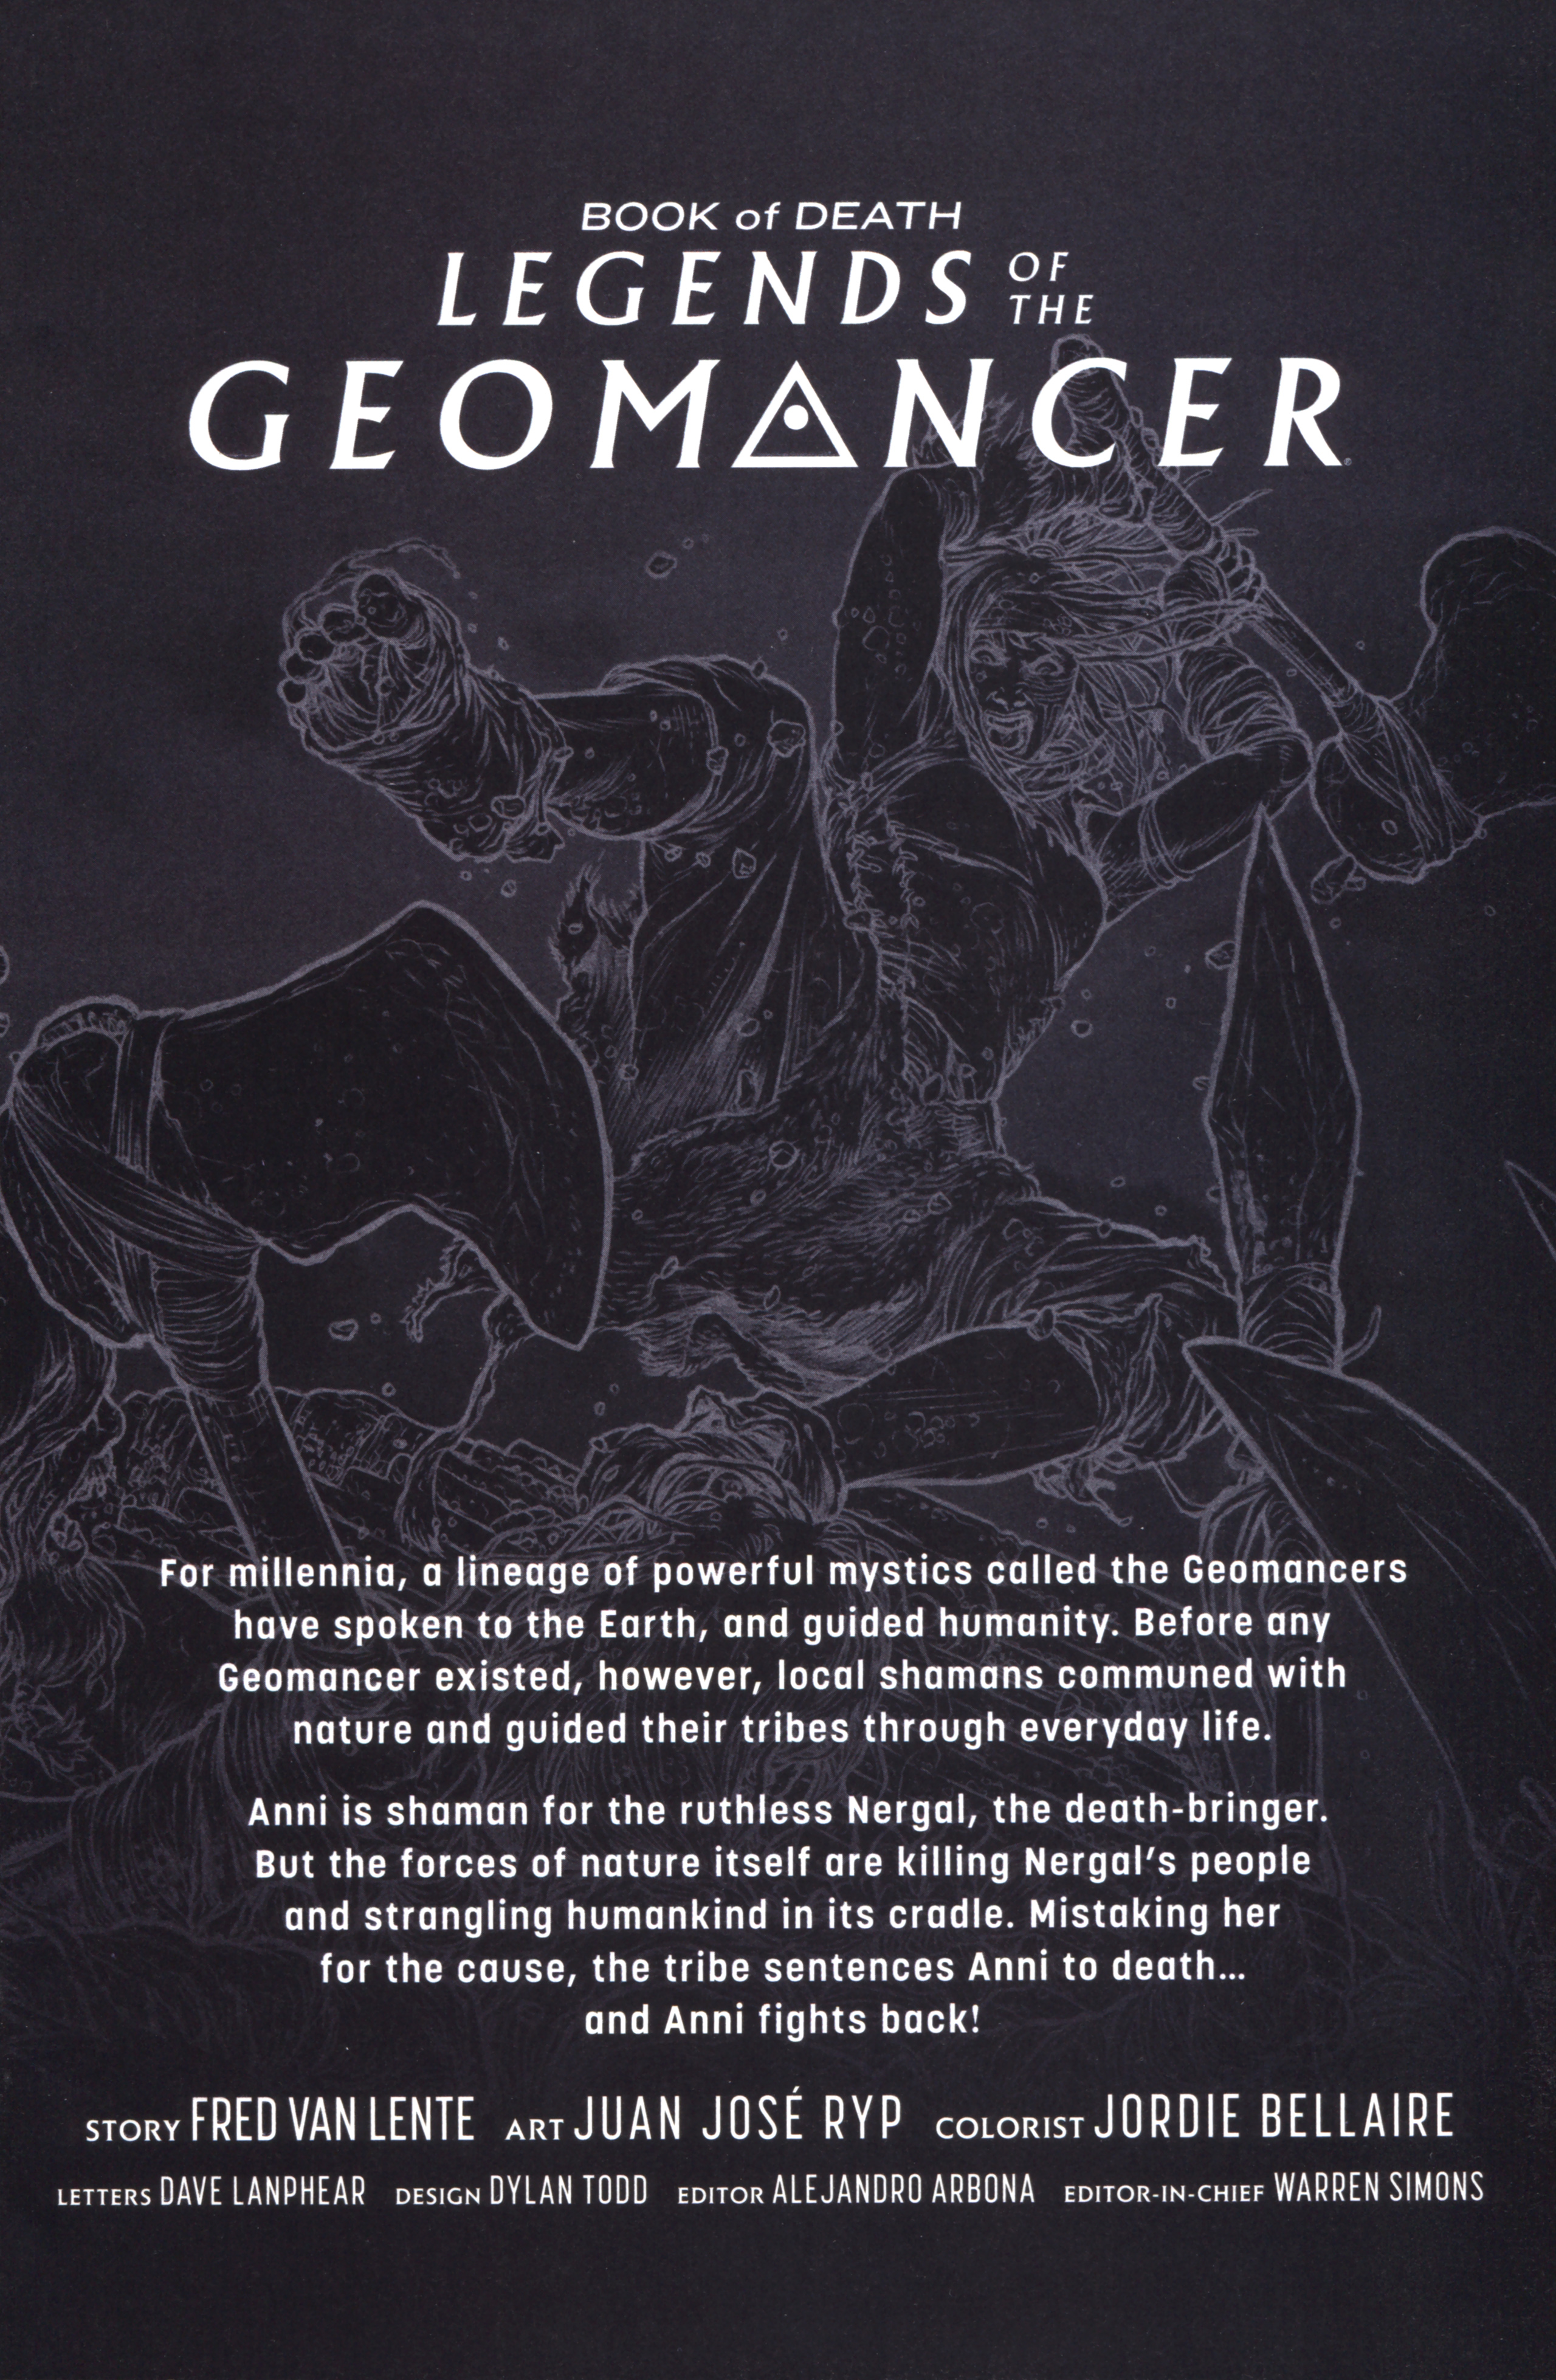 Read online Book of Death: Legends of the Geomancer comic -  Issue #2 - 3